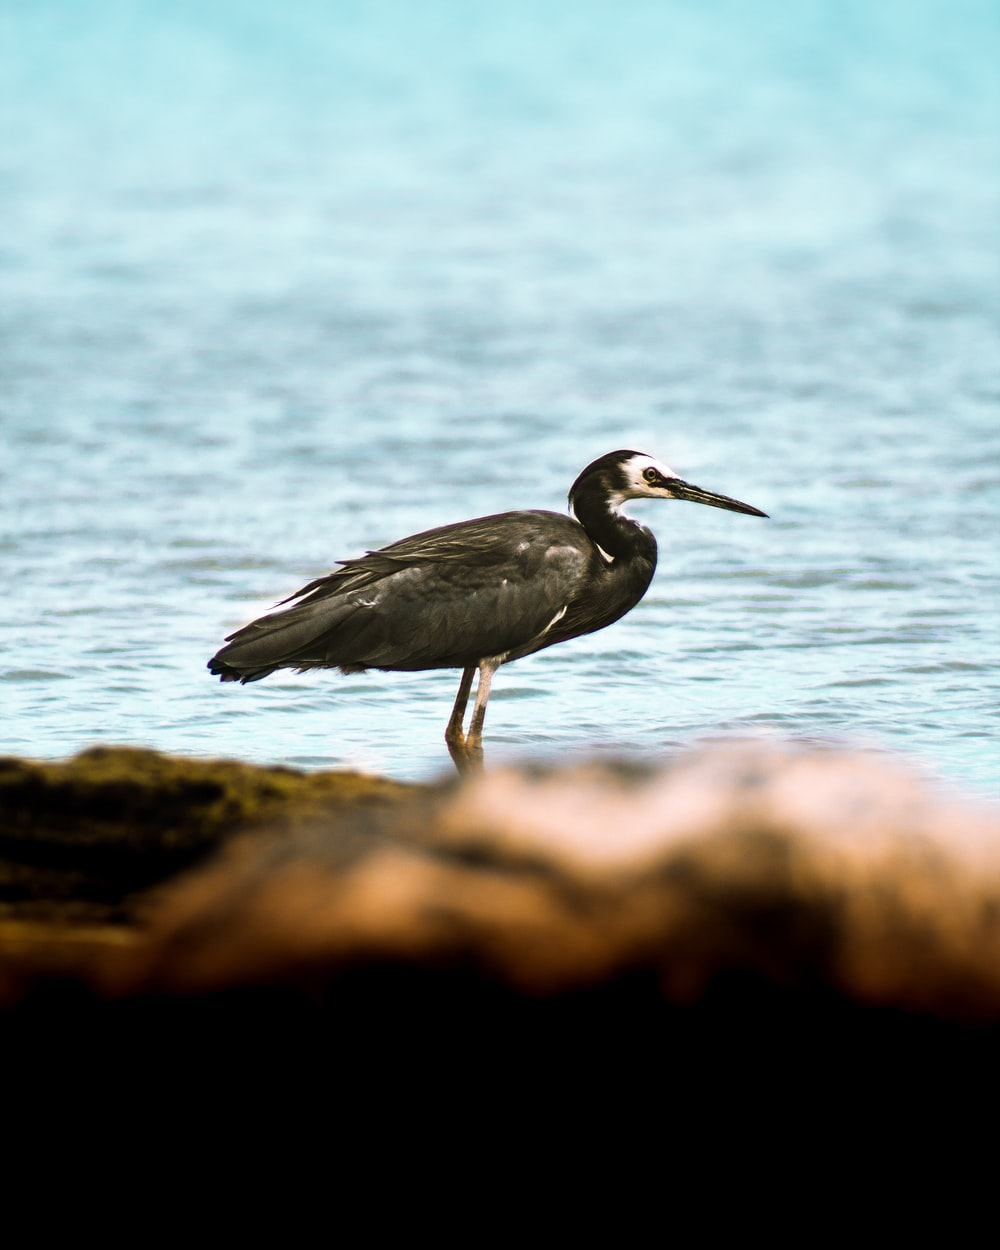 grey heron on brown rock near body of water during daytime